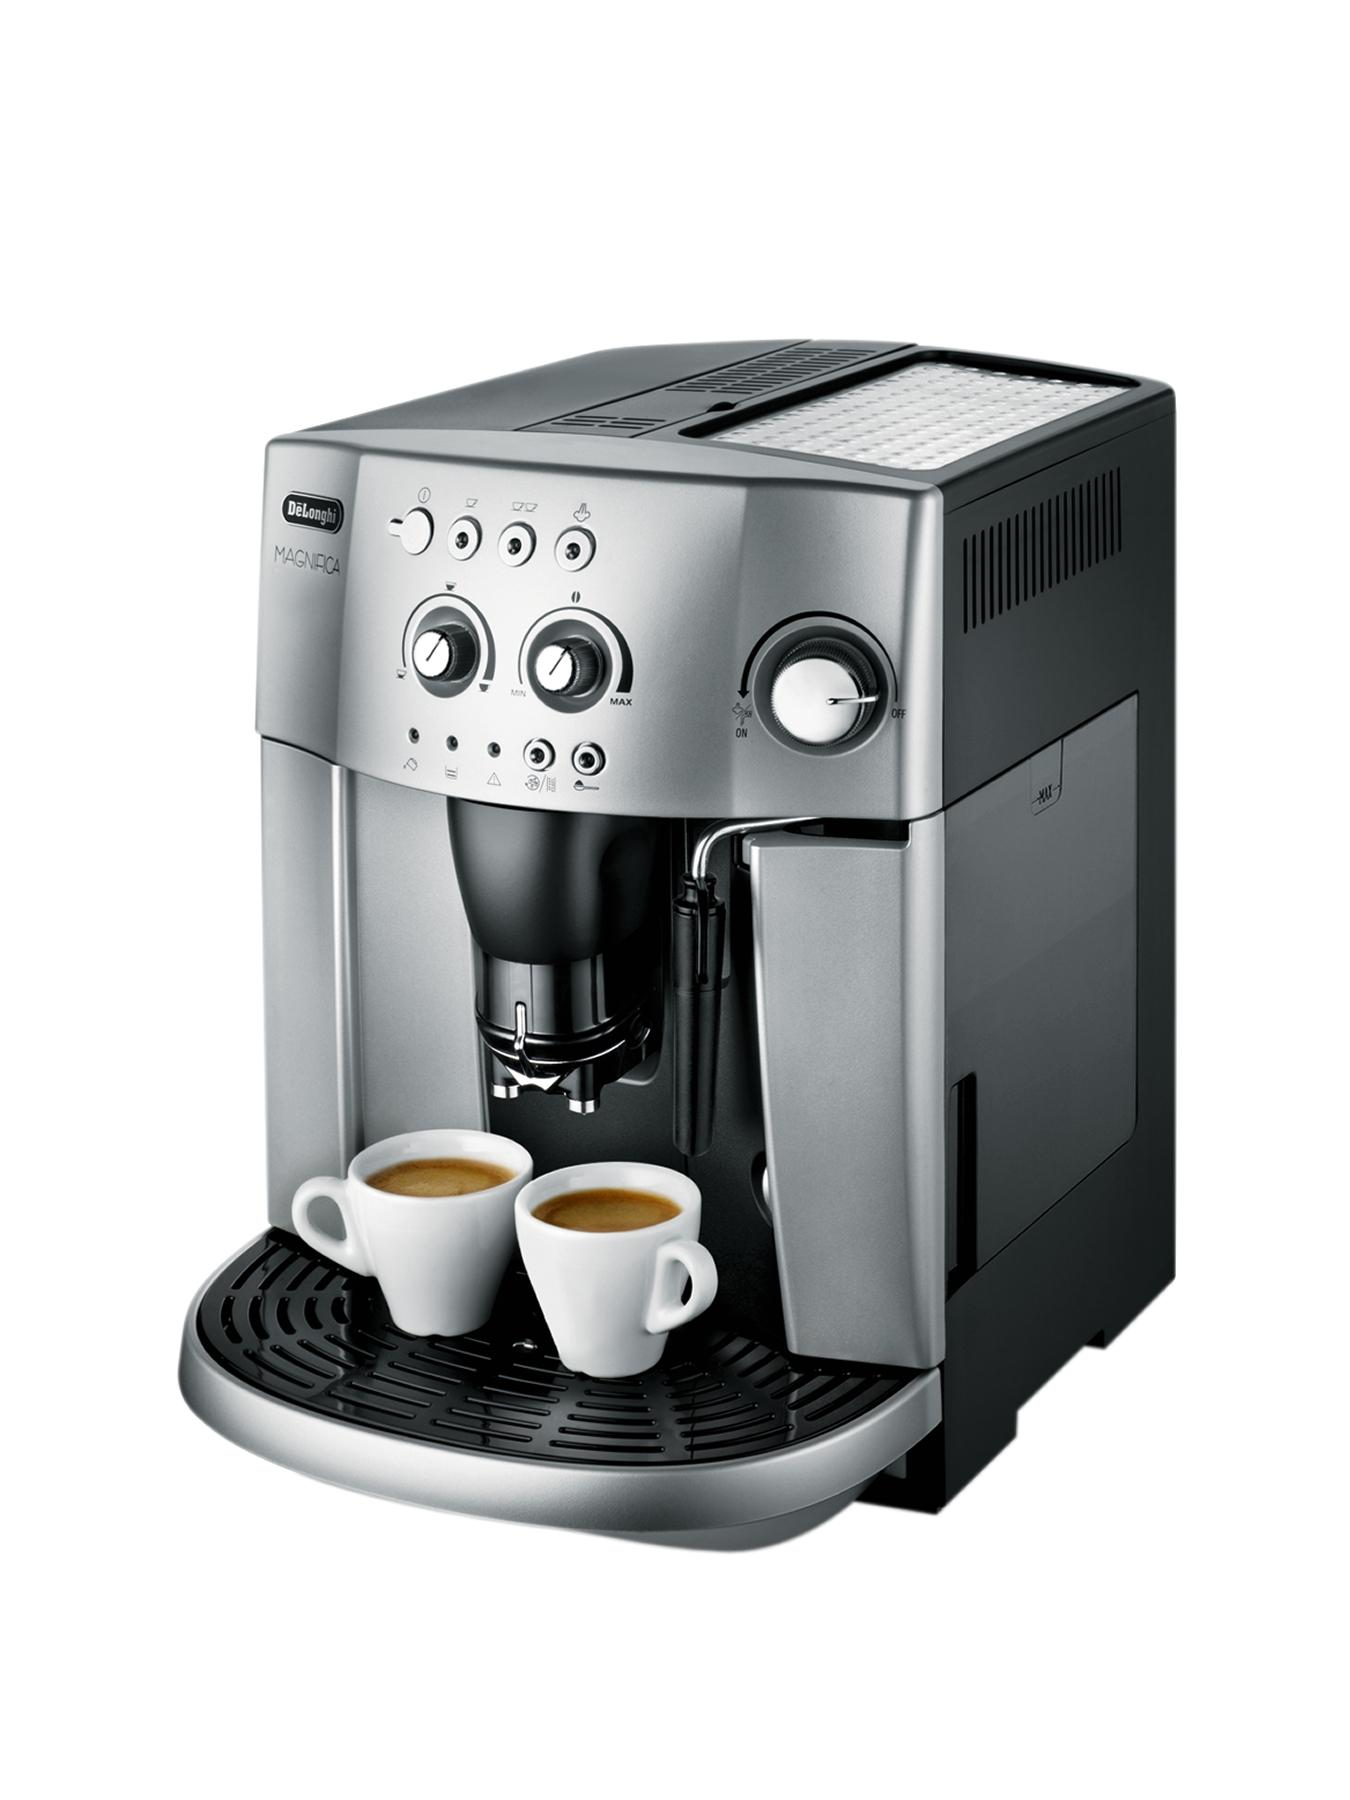 Delonghi Coffee Maker Homebase : Buy cheap Delonghi magnifica - compare Coffee Makers prices for best UK deals